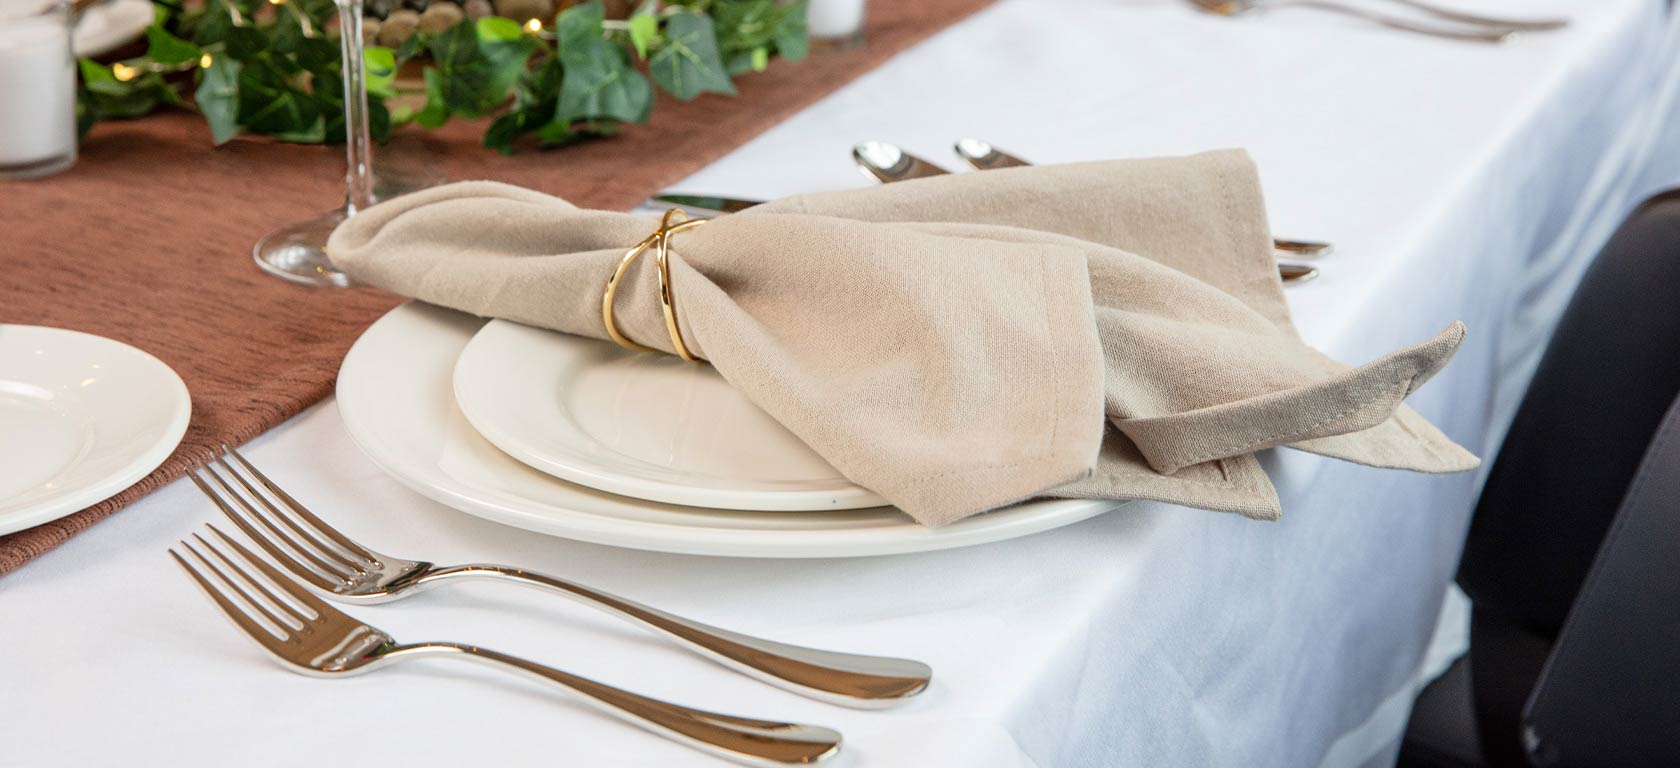 Elegant beige cloth napkin in golden napkin ring sitting on ornate table.